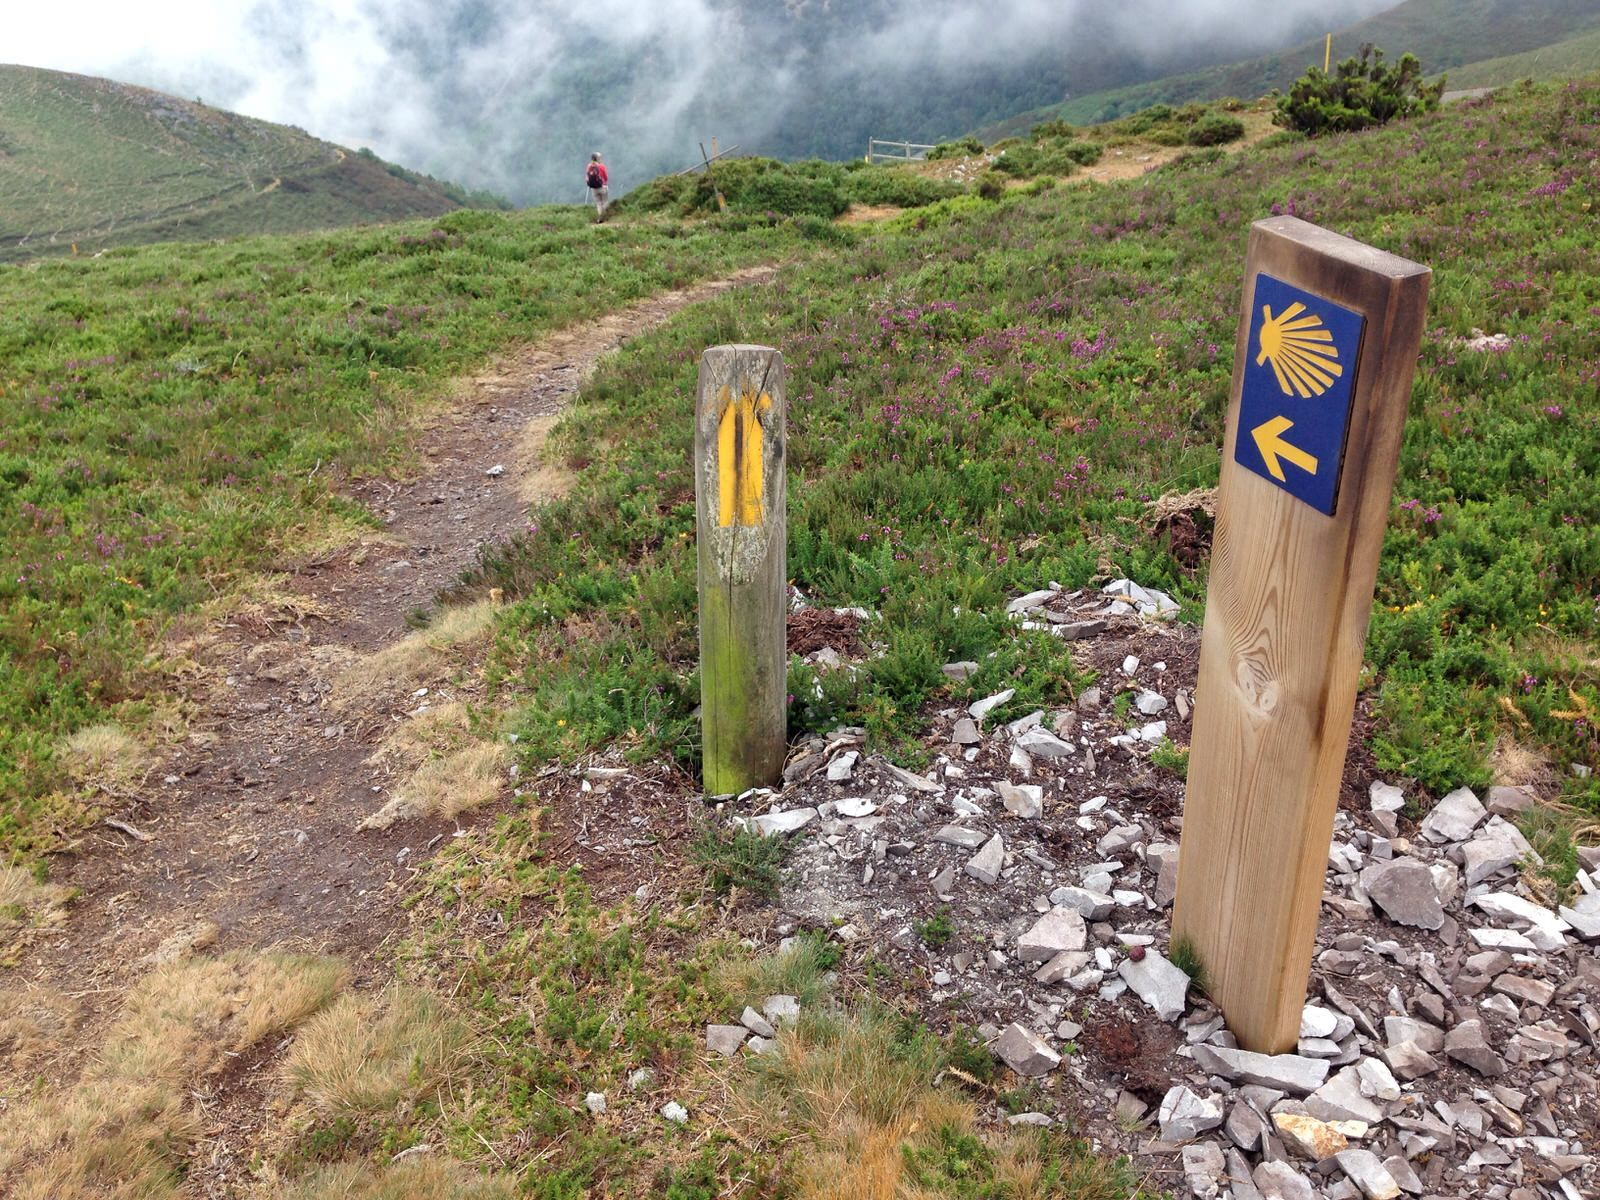 The Camino Primitivo Is Our Favourite Way Of Saint James So Far If You Re Planning To Do A Camino De Santiago We Rec The Camino Camino De Santiago Pilgrimage